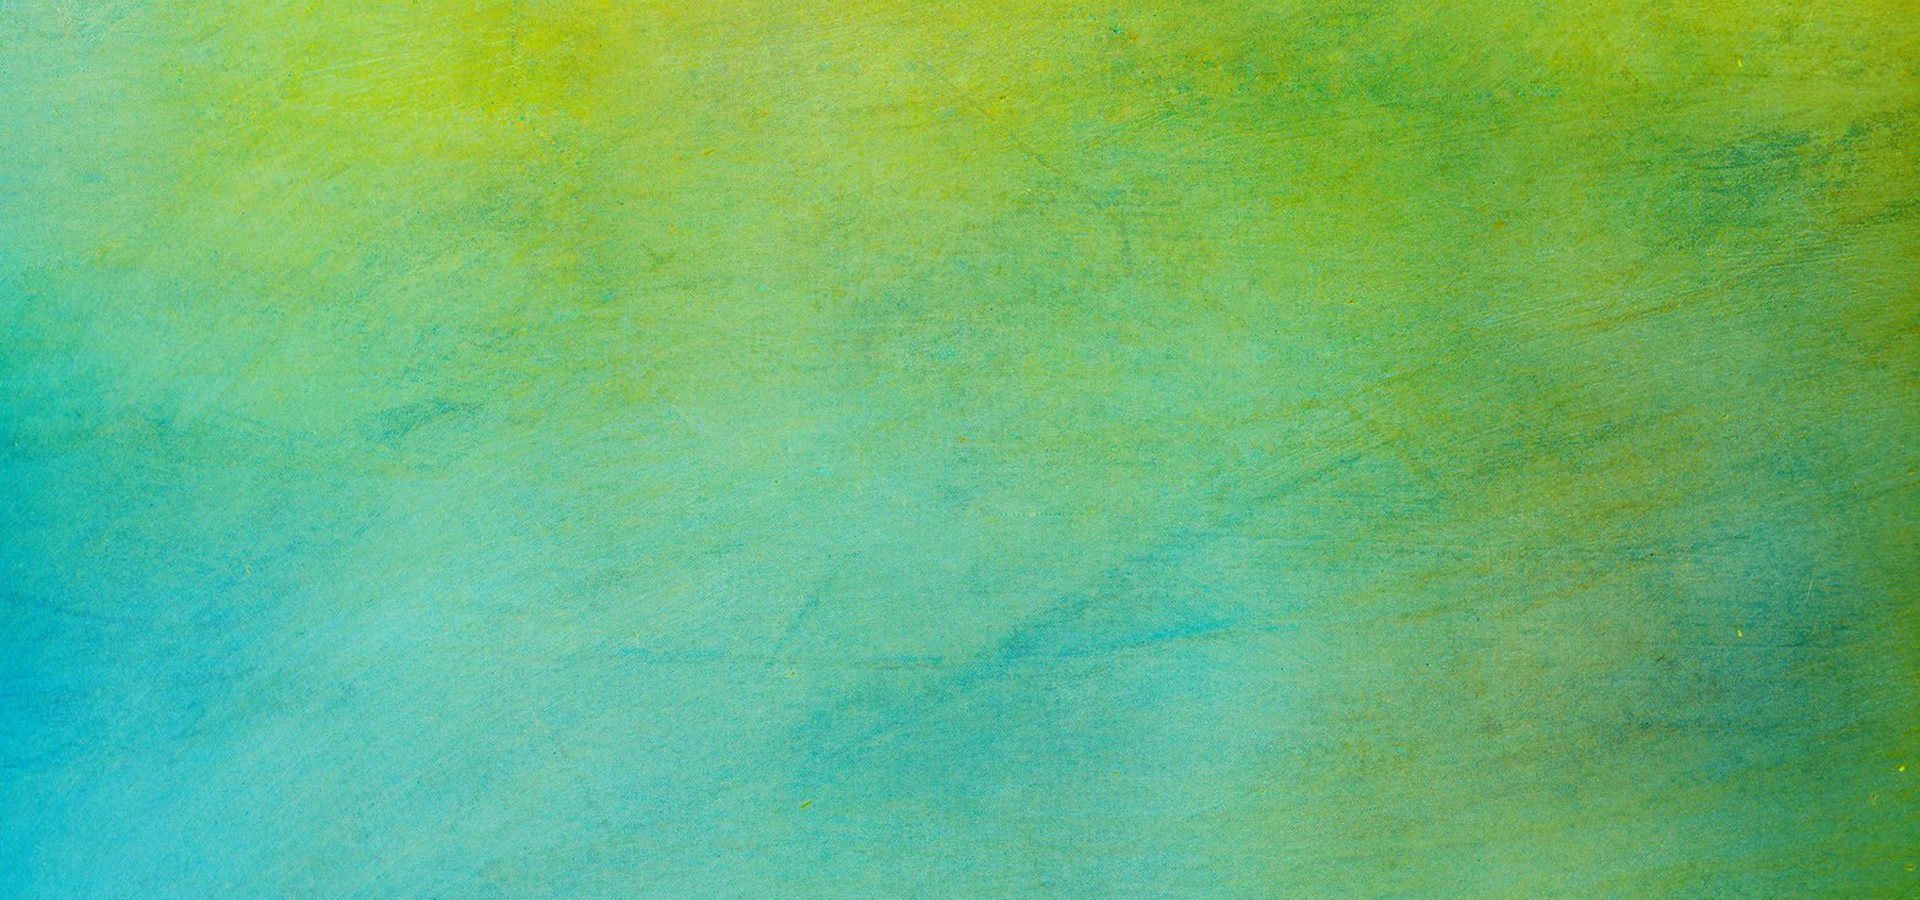 Solid Color Gradient Texture, Green, Simple, Textured